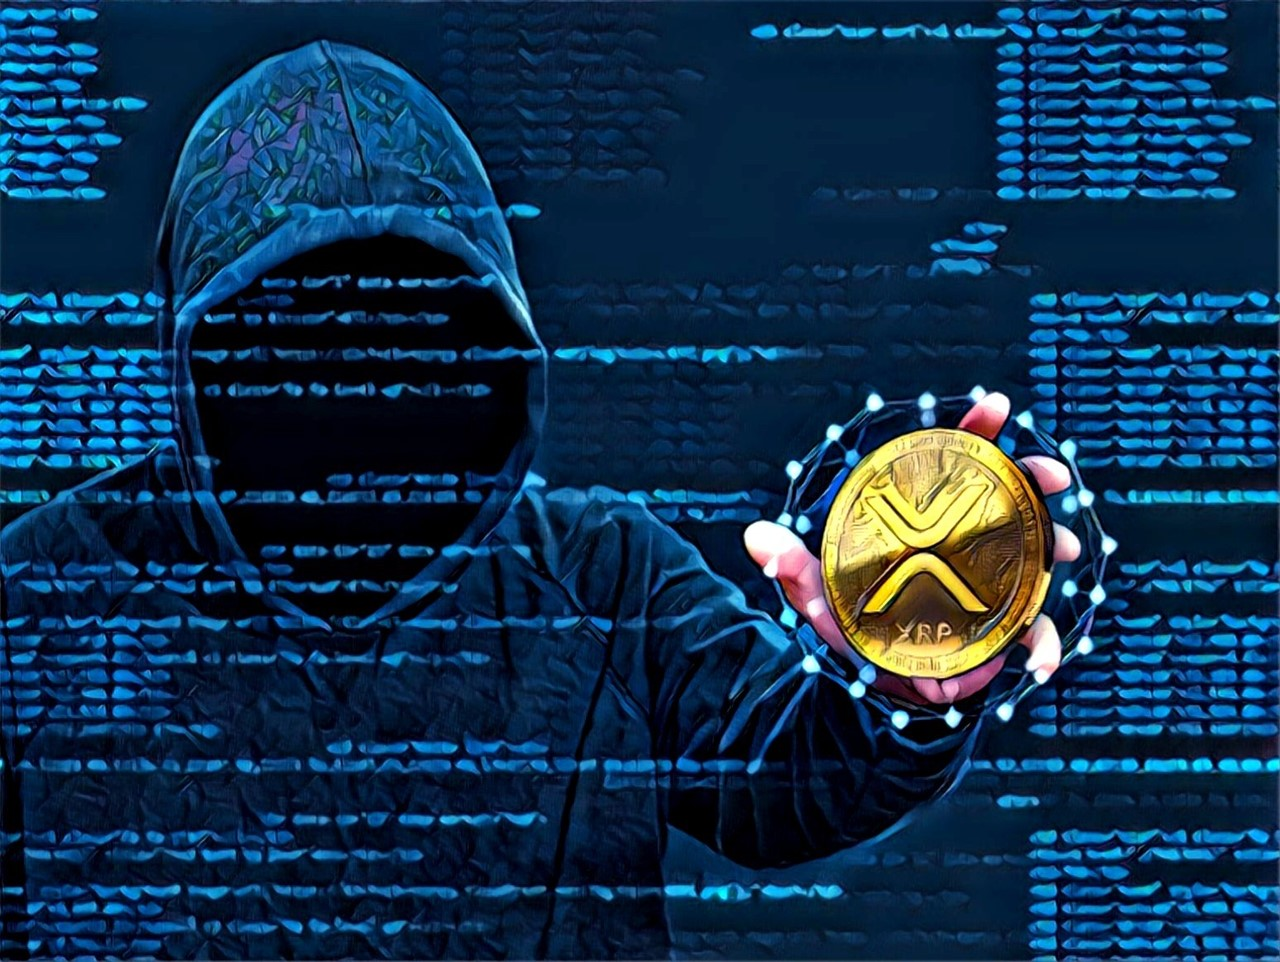 xrp giveaway scams 1280x962